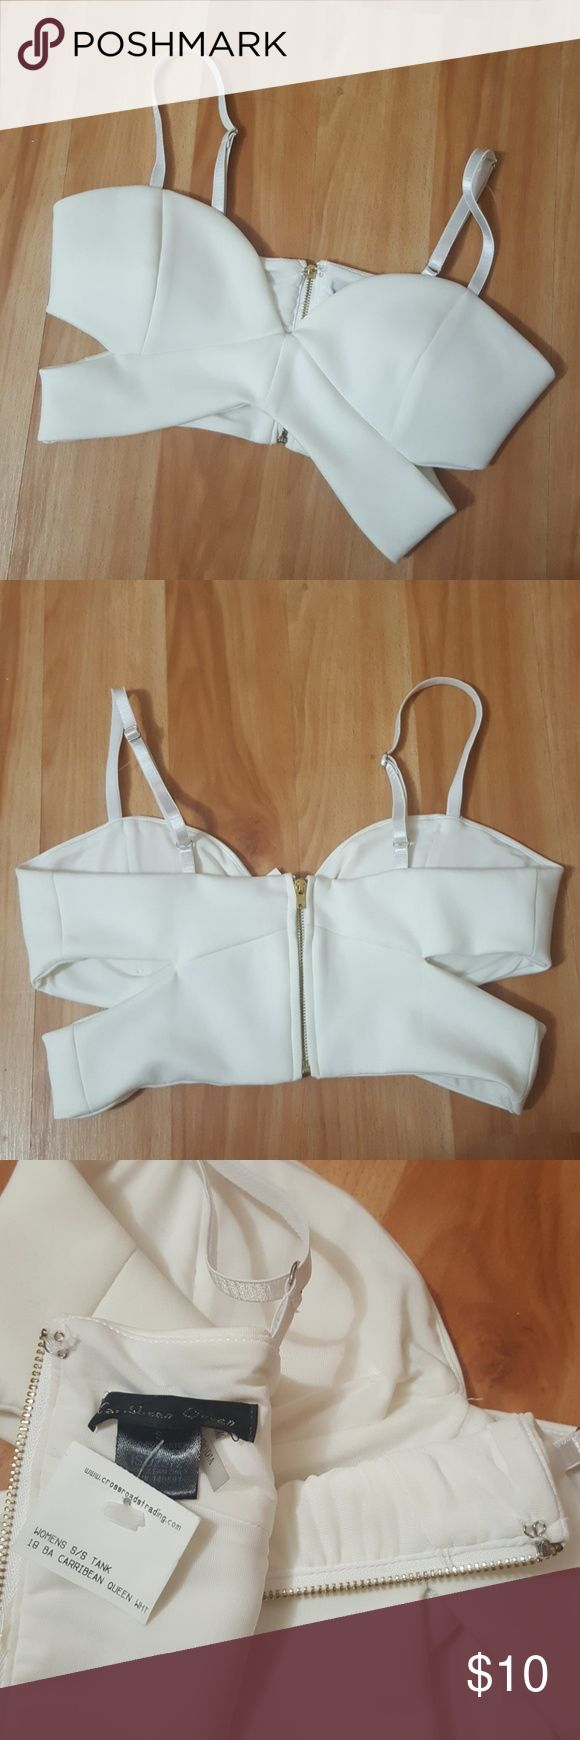 EUC Caribbean Queen White Cross Bandeau Top - S Bought from Crossroads Trading, but never worn!   - Adjustable straps  - 92% Polyester, 8% Spandex - Gold zipper back with hook  Looks cute with a pencil skirt for a night out!  Sorry, no trades. Offers accepted. Thank you!  Caribbean Queen Tops Crop Tops